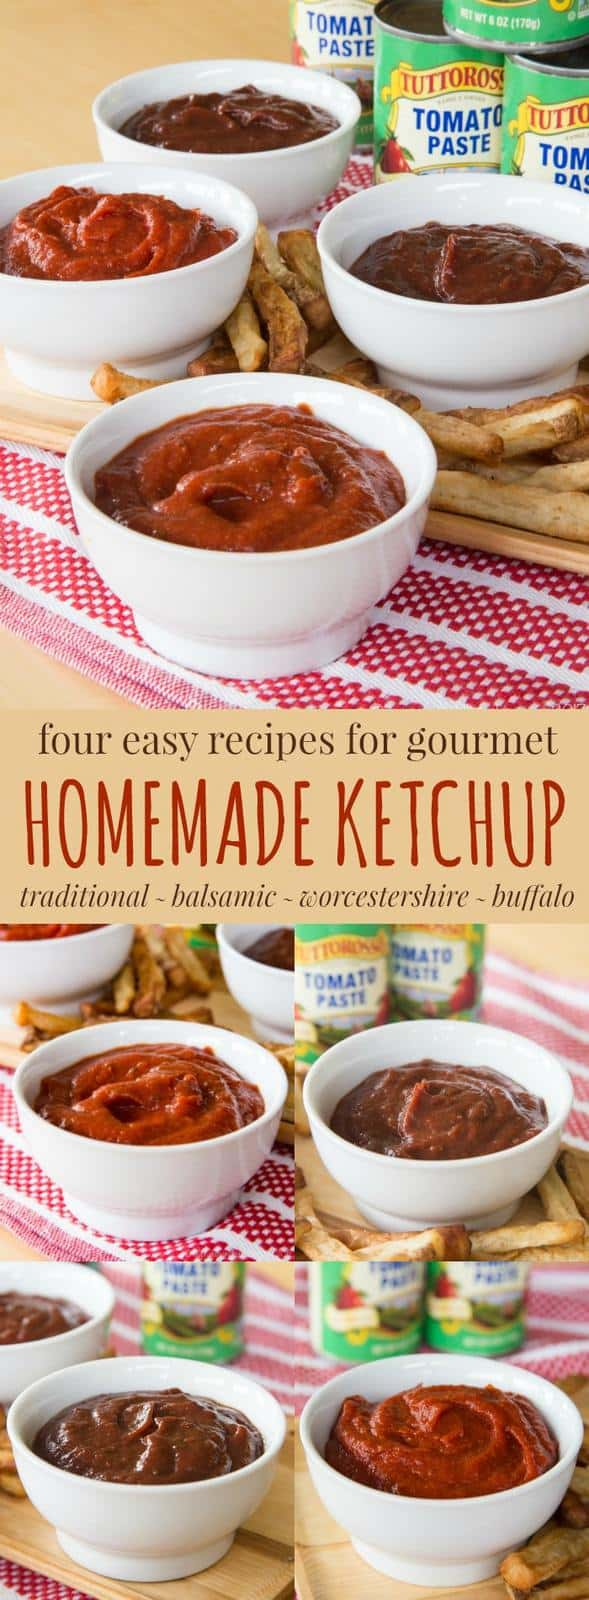 how to make tomato paste out of ketchup